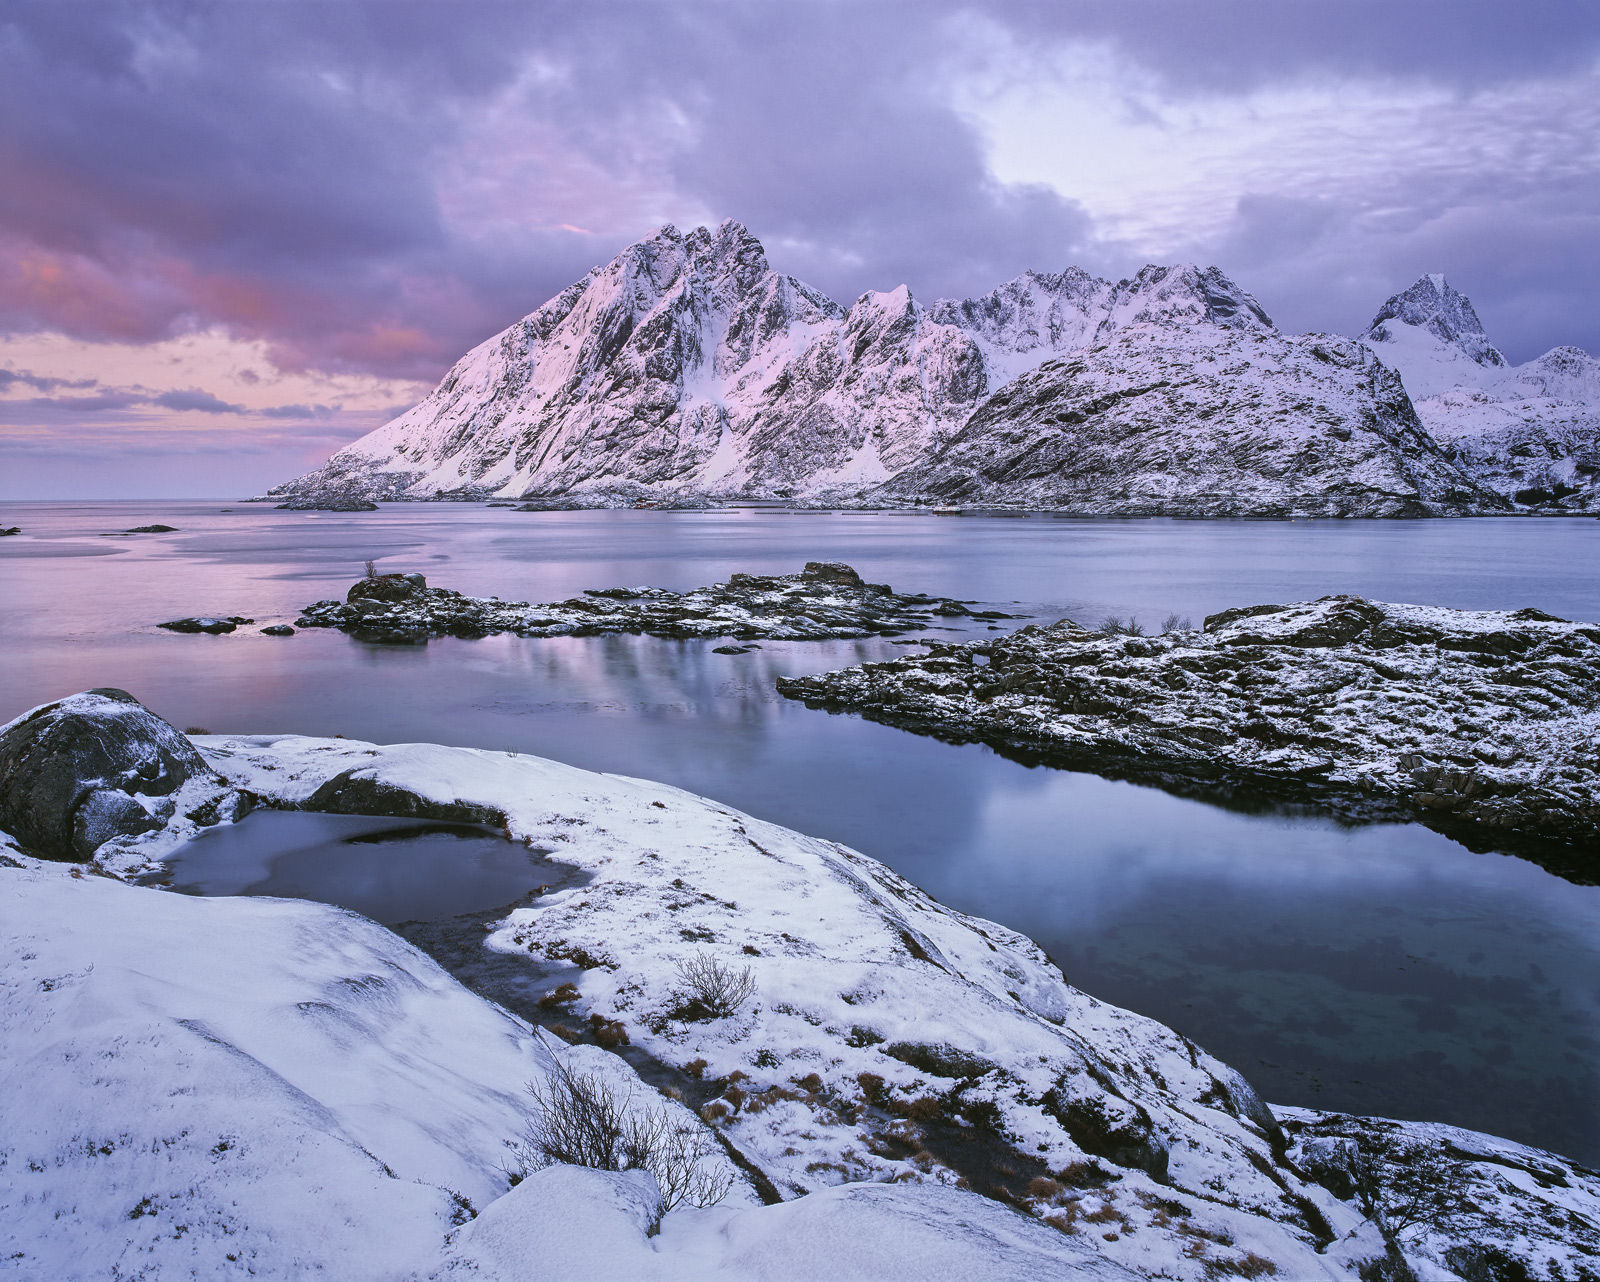 The first morning on Lofoten and we opted for an easy start not too far away from Reine in the hope of catching a little of an...